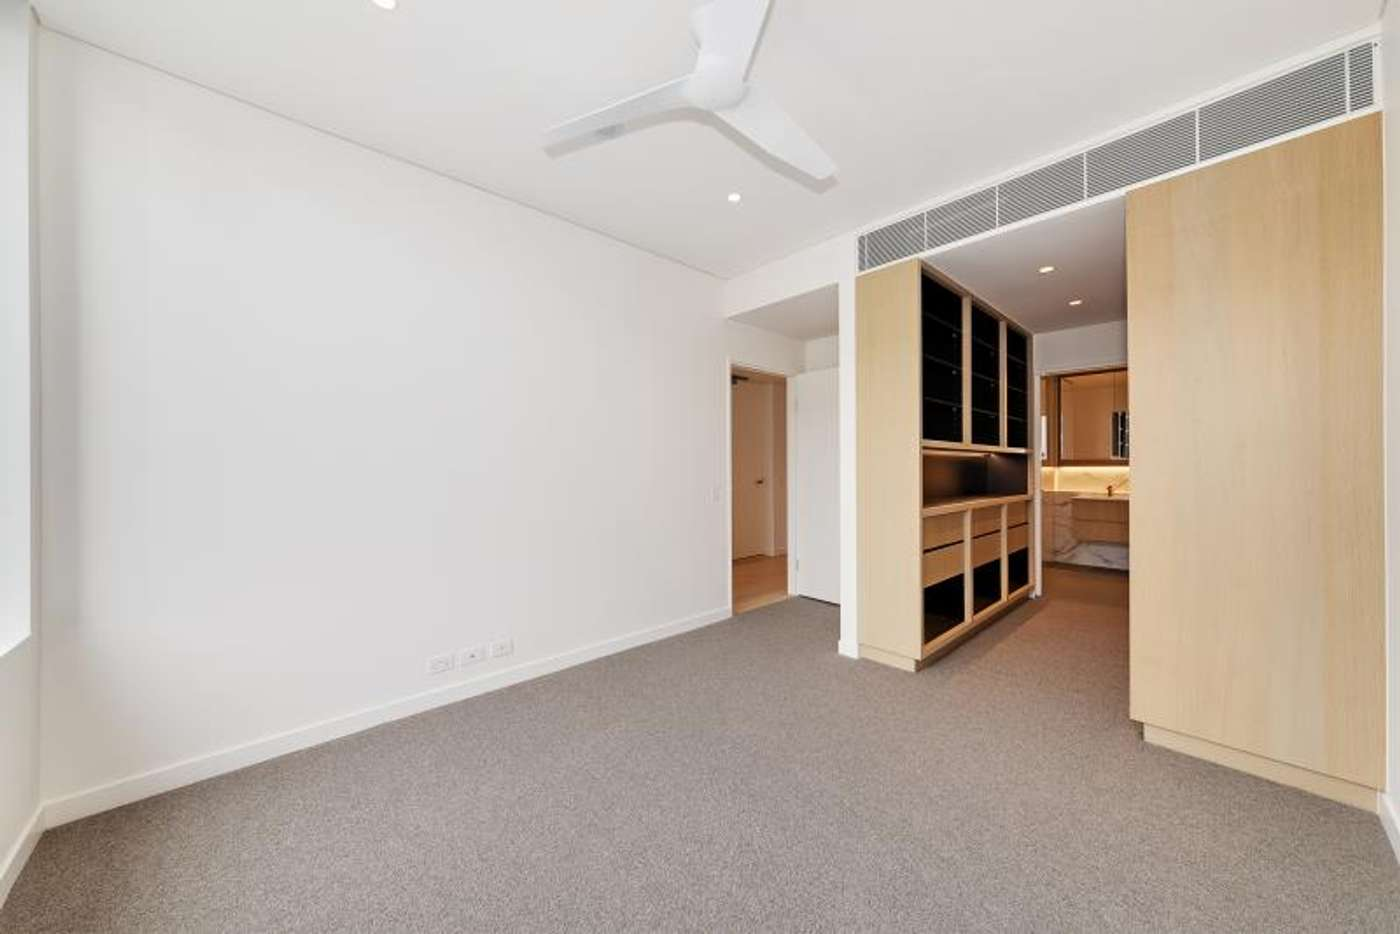 Sixth view of Homely apartment listing, 608/3 Young Street, Randwick NSW 2031